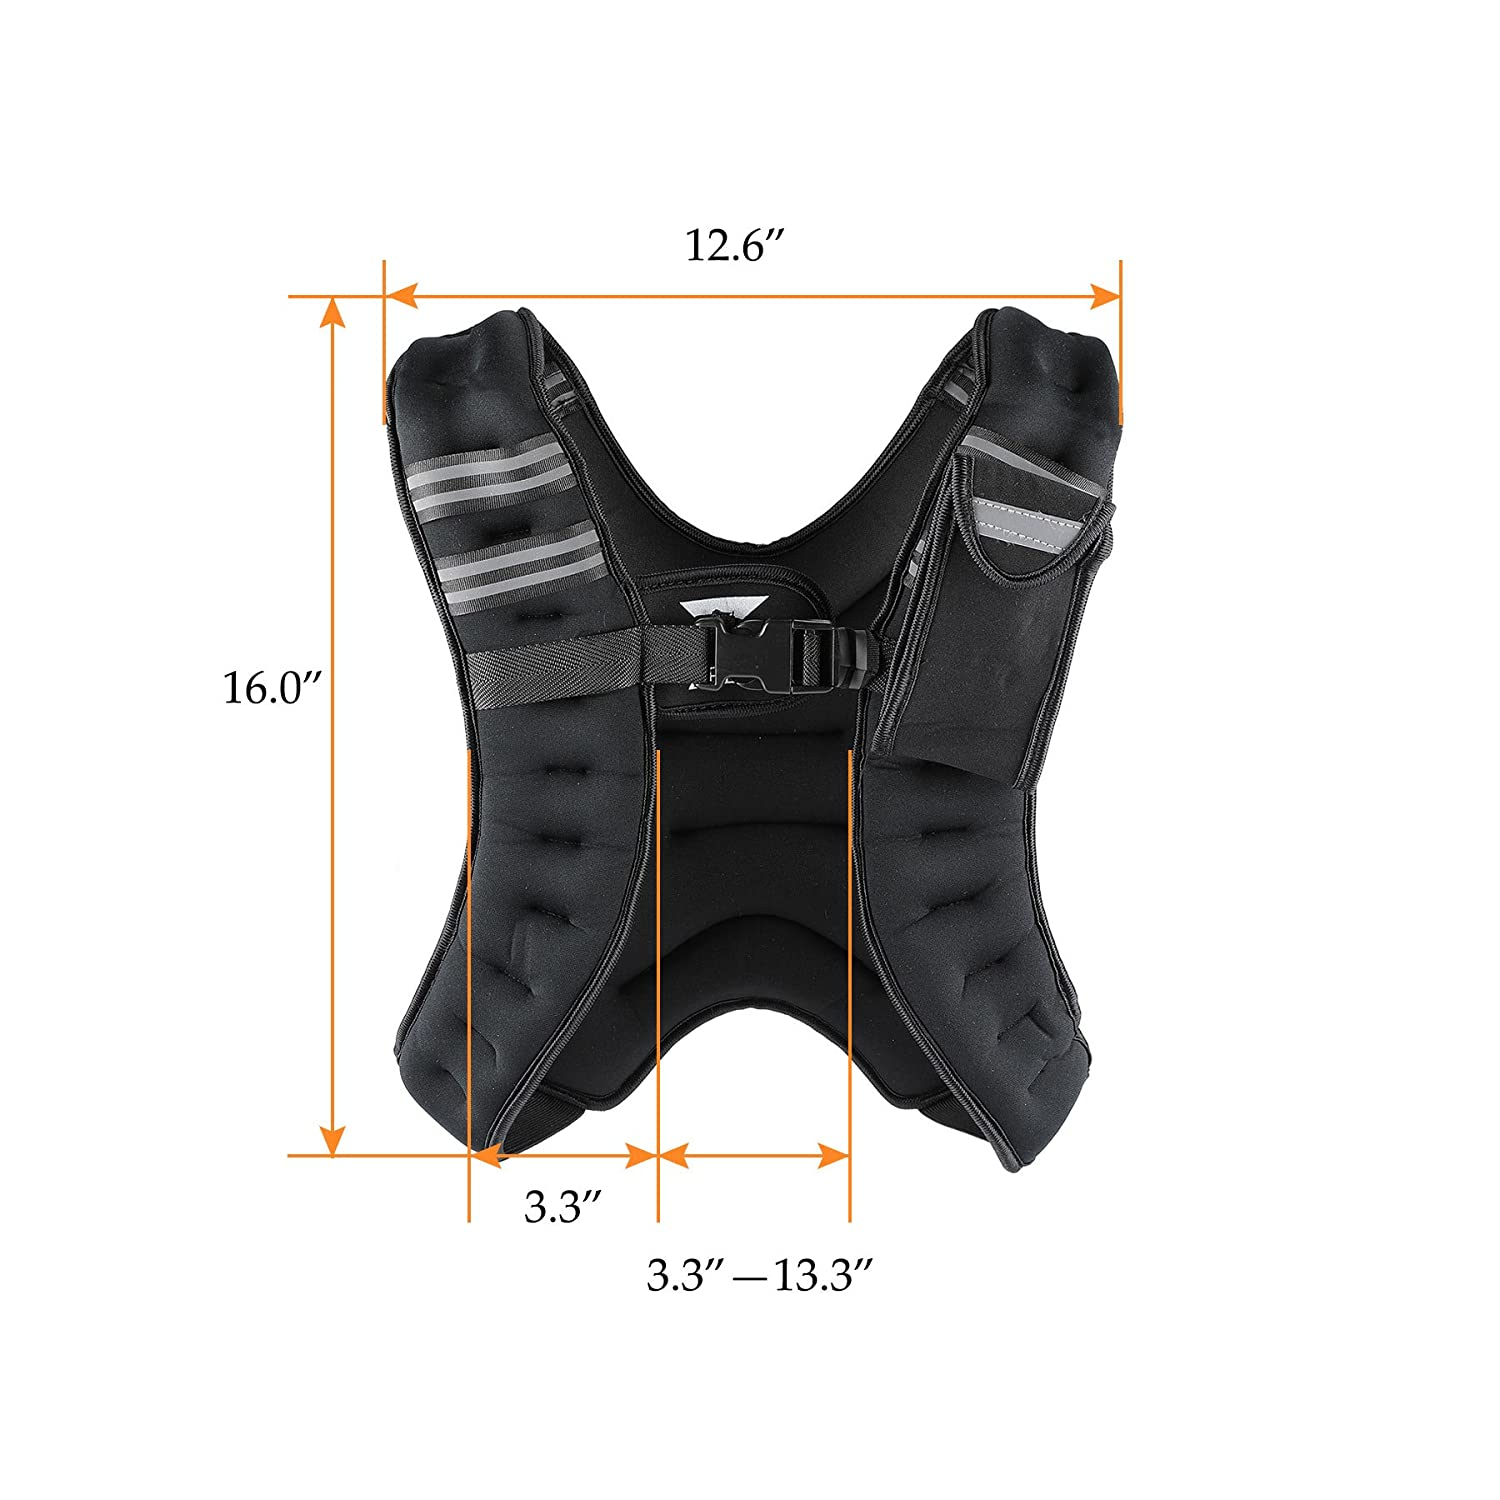 ZELUS Weighted Vest 12 lb Weight Vest w//Reflective Stripe for Workout Weight Loss Strength Training Muscle Building Fitness Black Z ZELUS Running Weightlifting Weightlifting